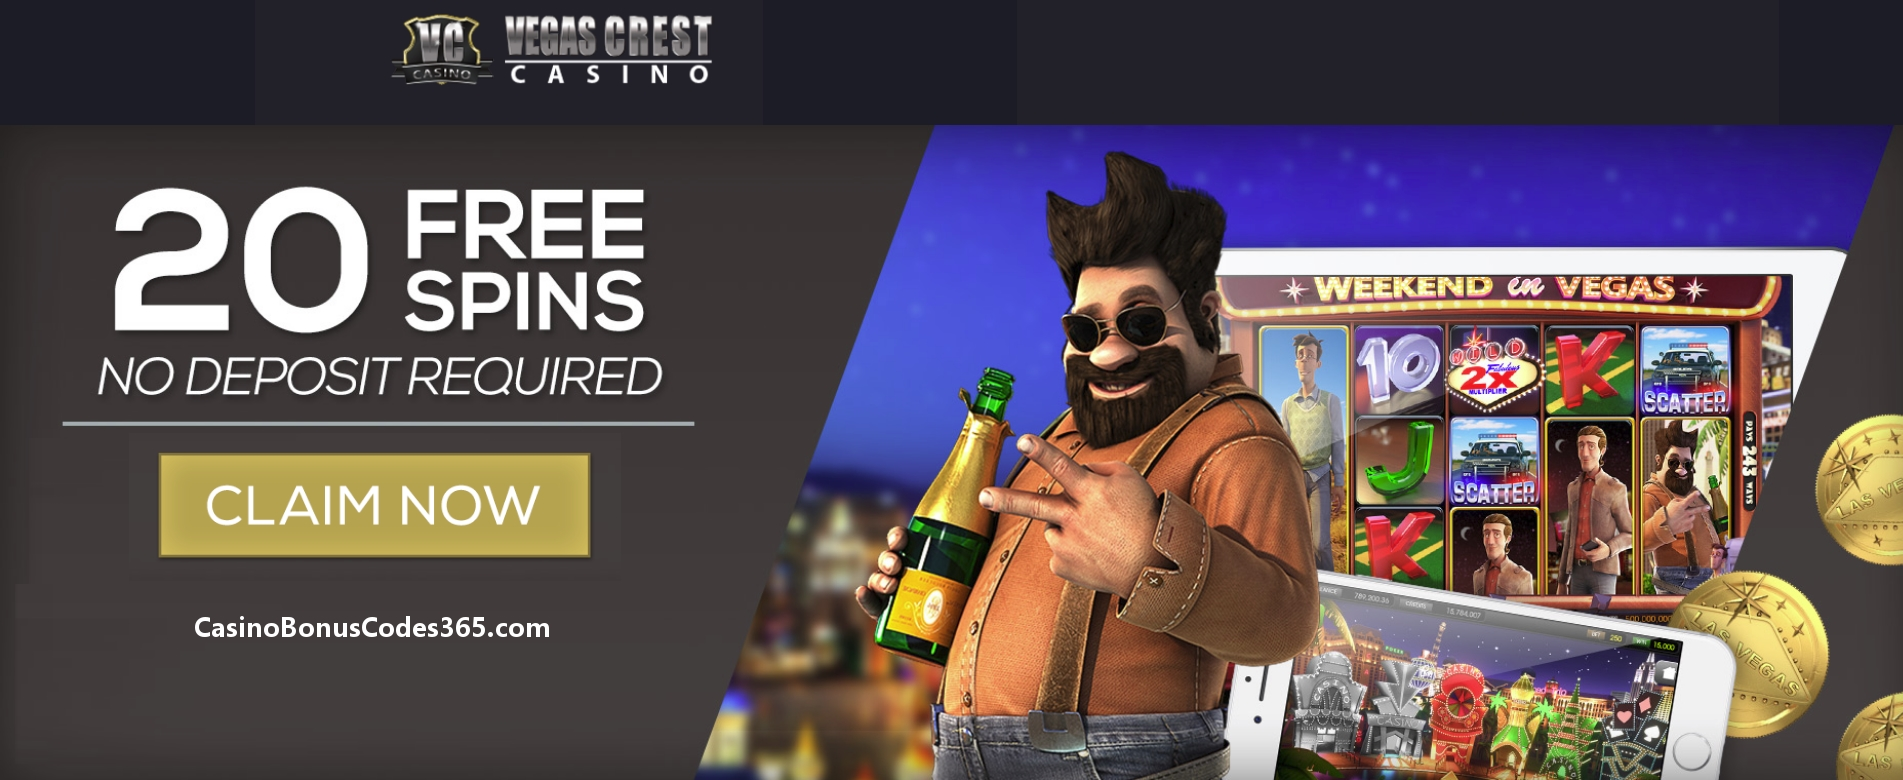 £1675 no deposit bonus code at Casino.com